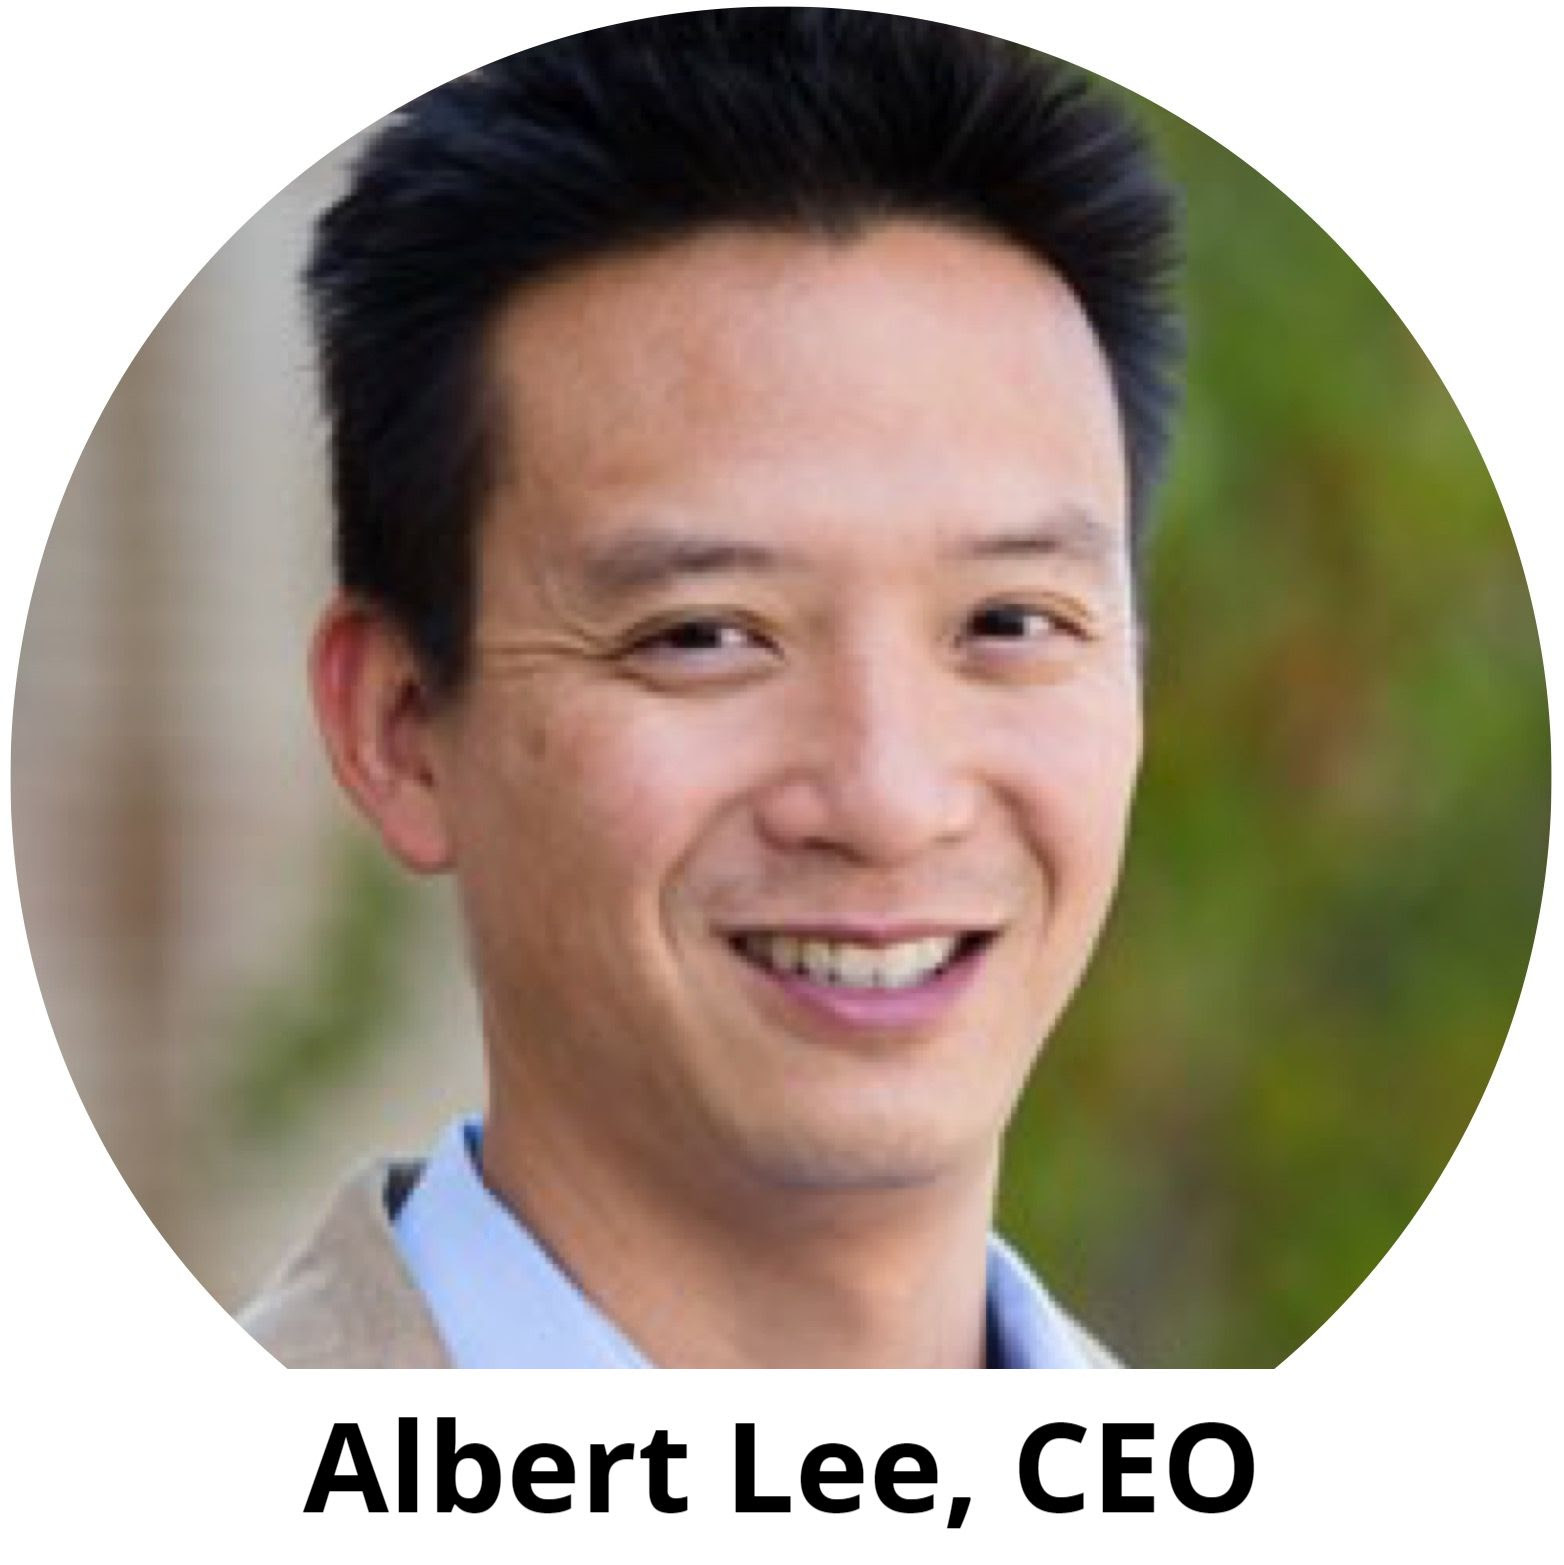 Albert Lee, CEO